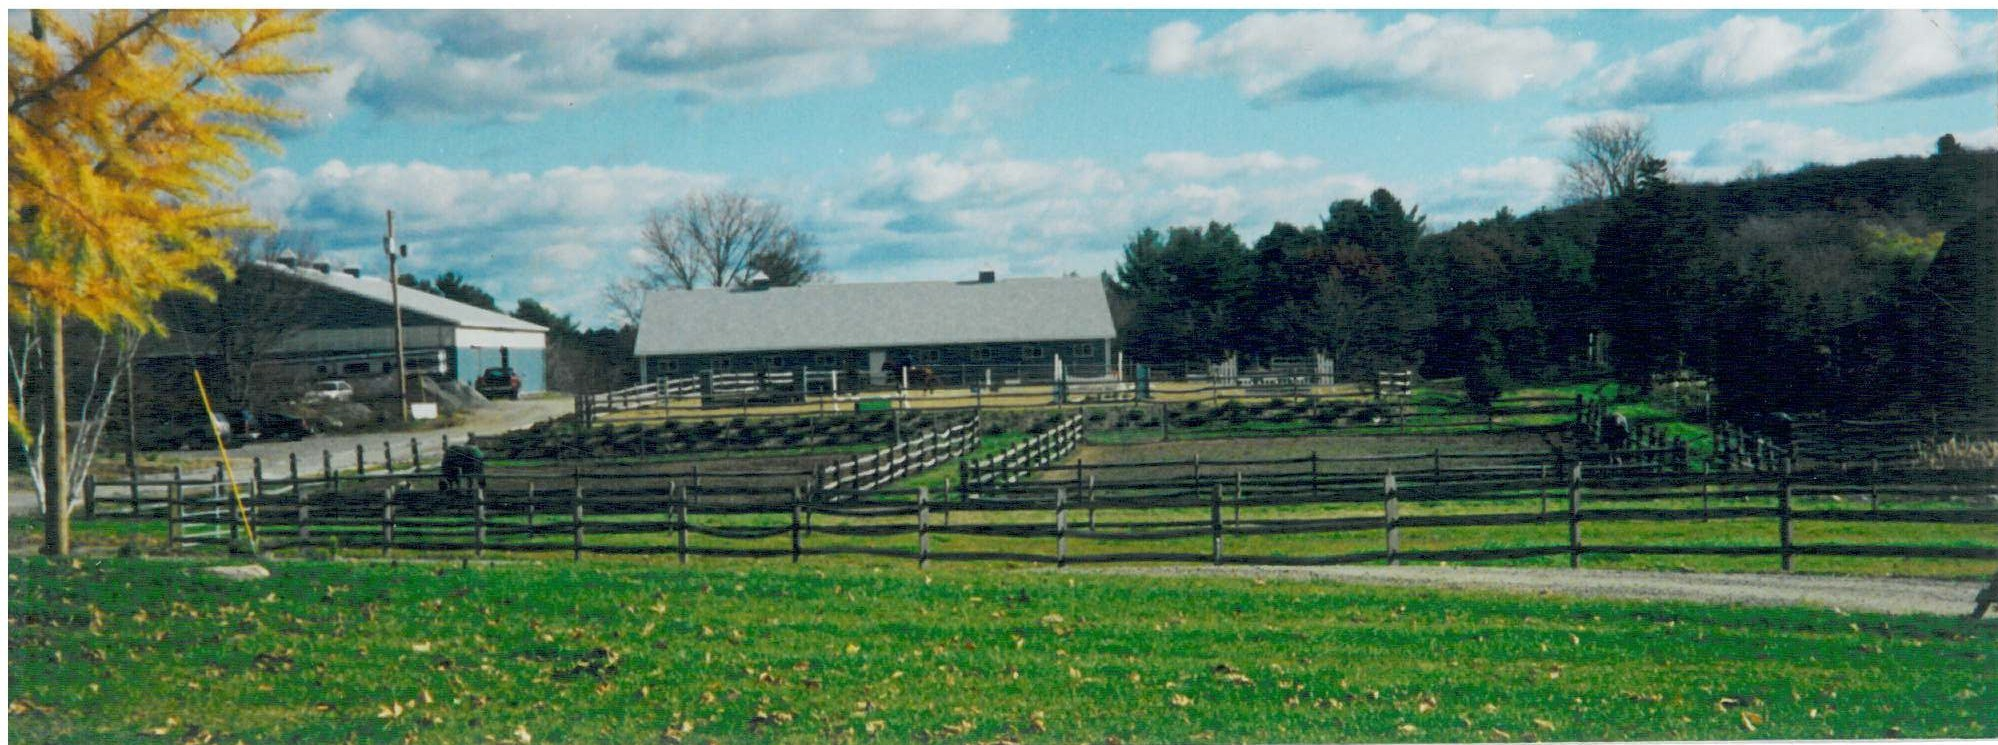 Back Bay is Equine Journal's Featured Farm